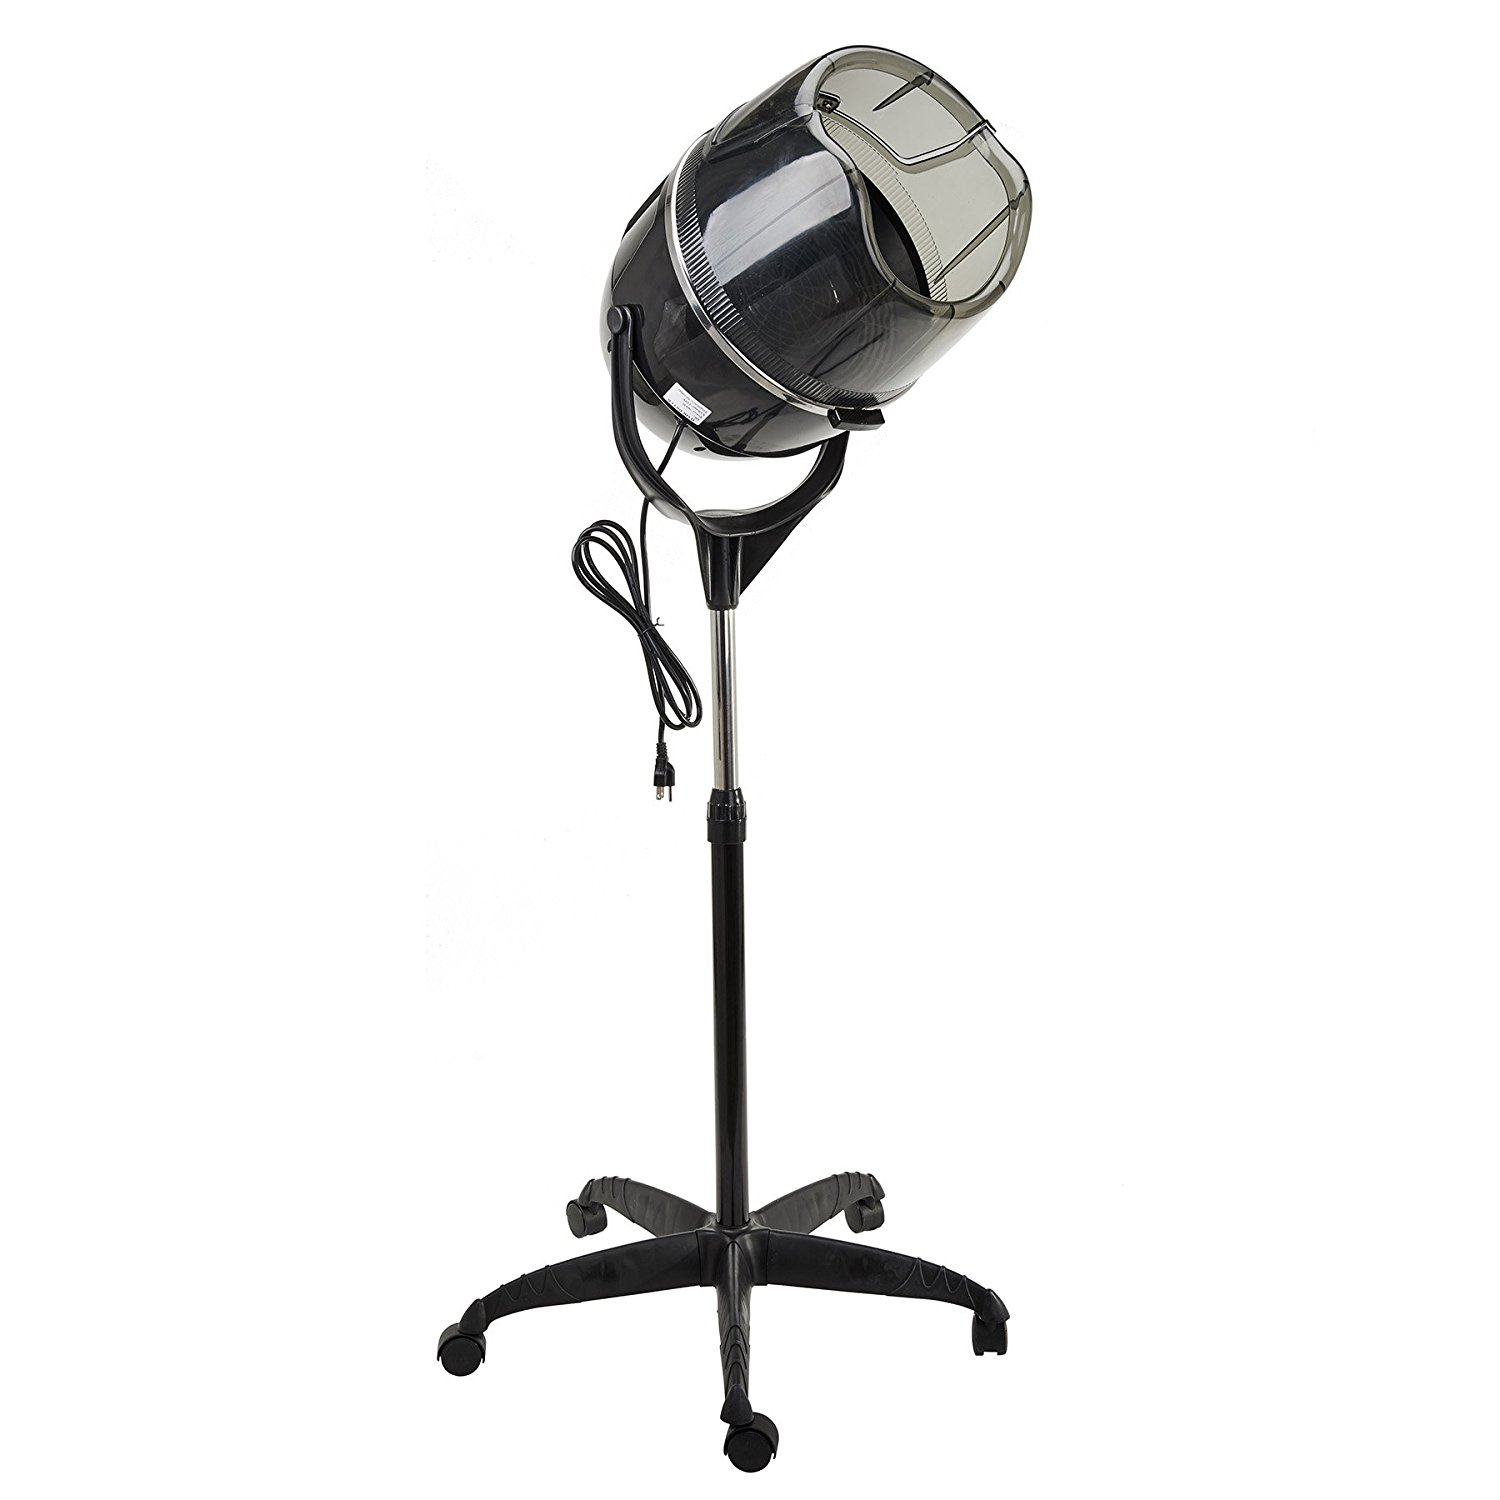 Professional Stand Up Hair Dryer 110V with Timer Swivel Hood Caster Adjustable